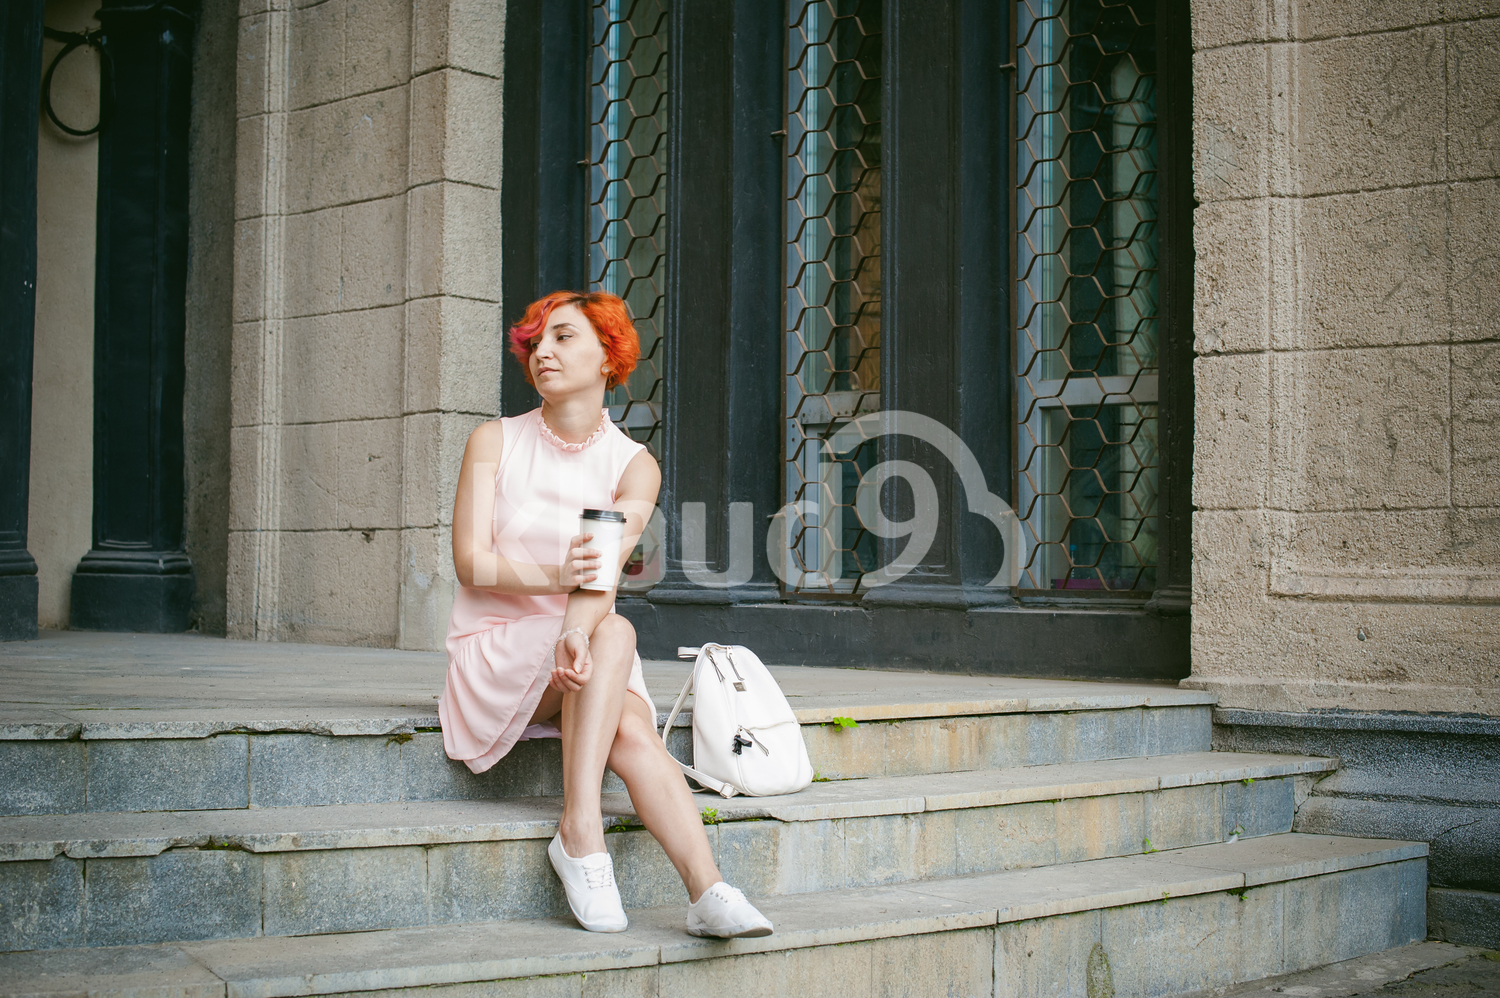 Red haired lady looking lost in her thoughts with a coffee cup